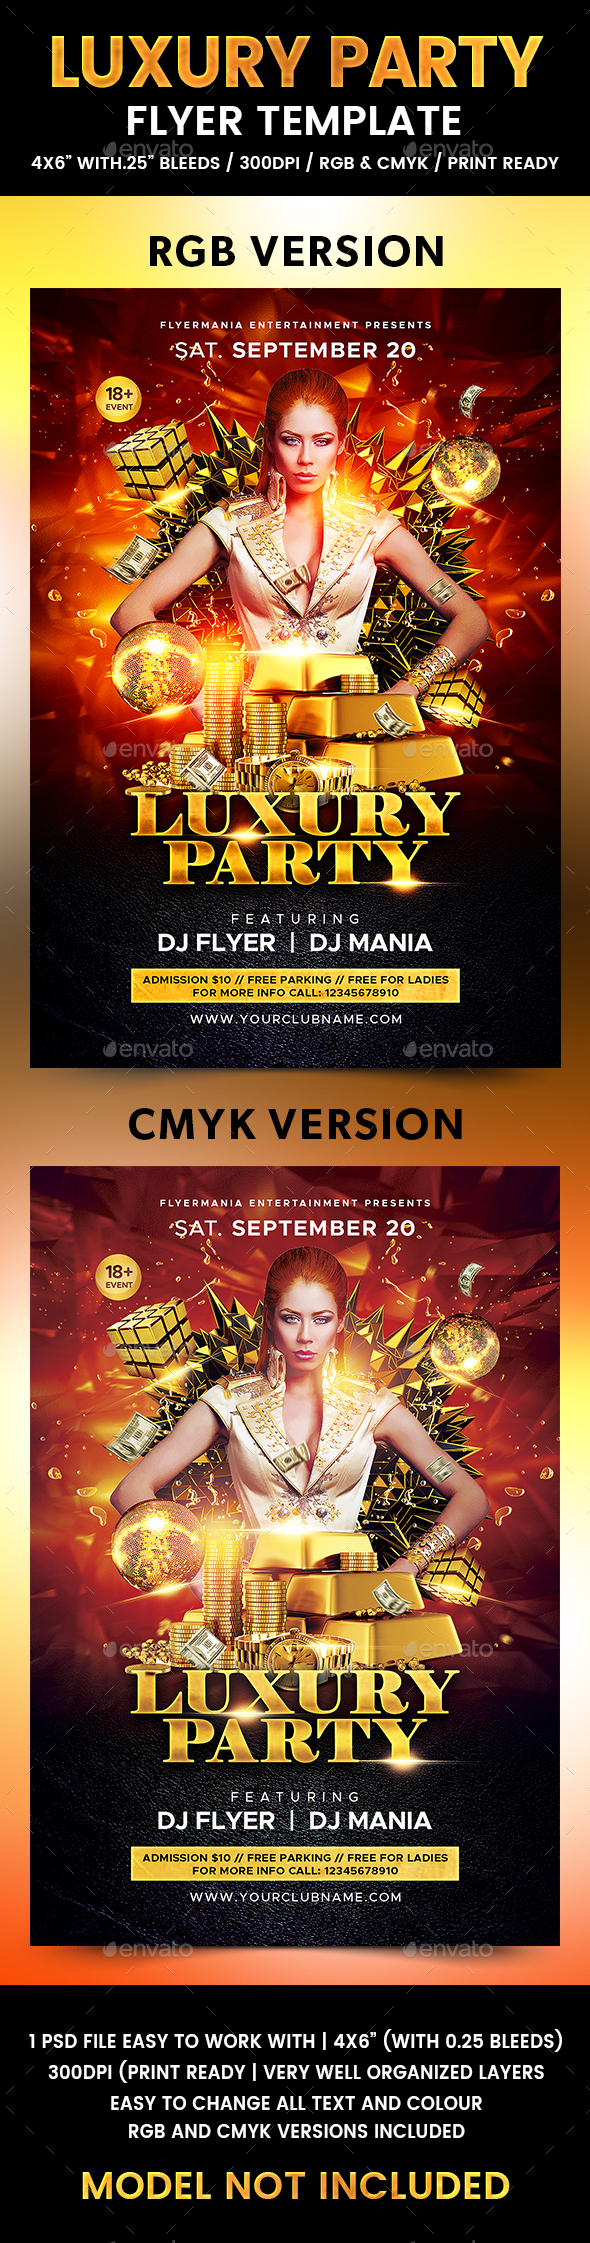 Luxury Party Flyer Template - Flyers Print Templates